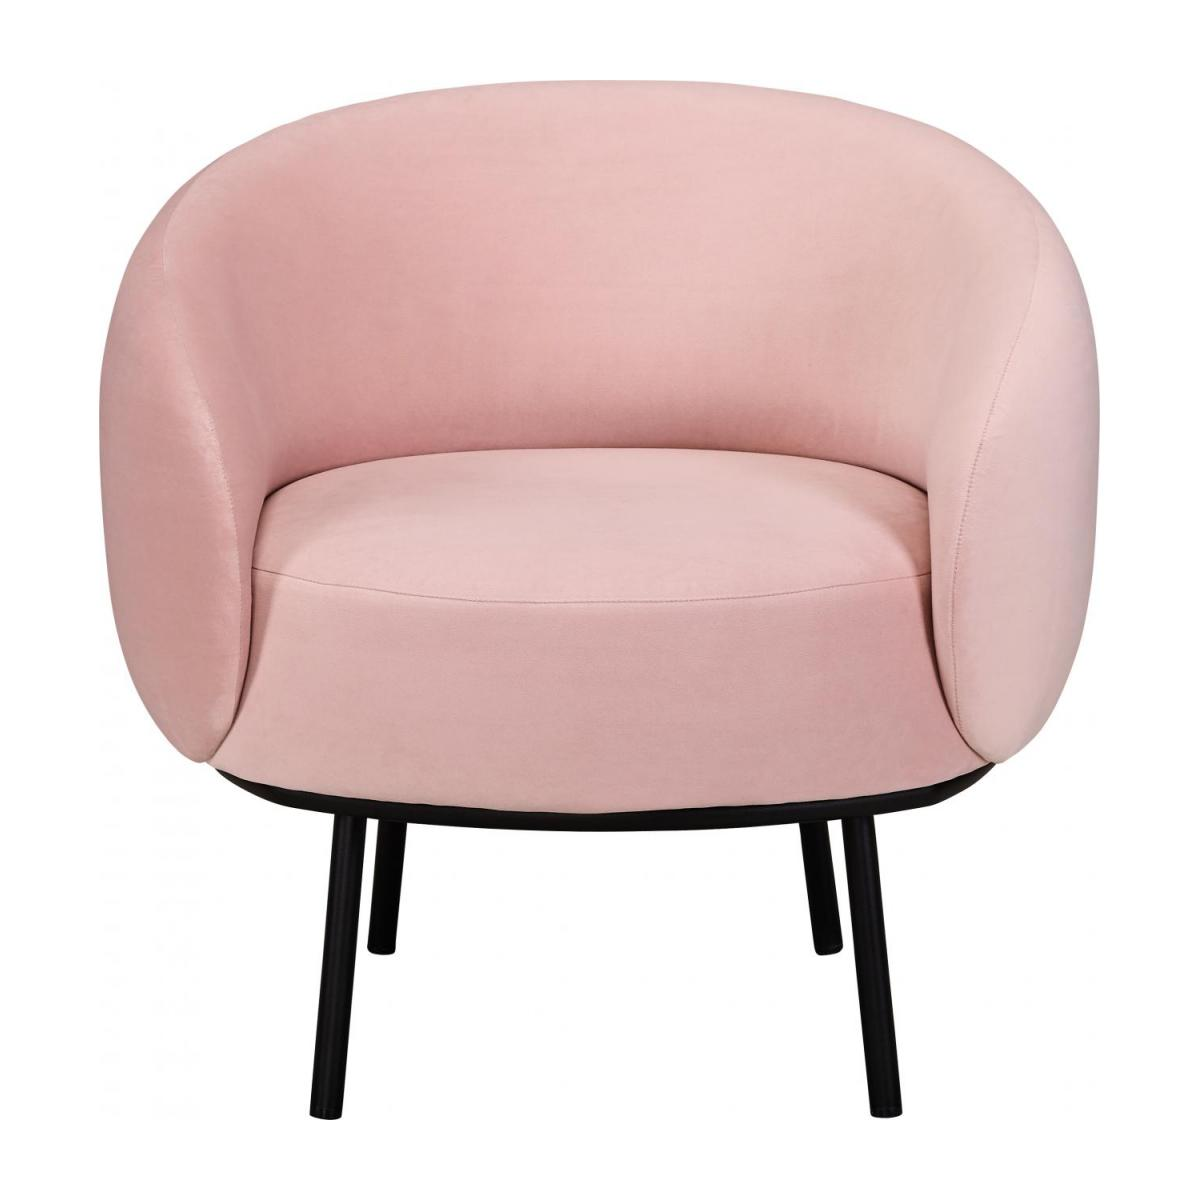 Fauteuil en velours - Rose - Design by Adrien Carvès n°3